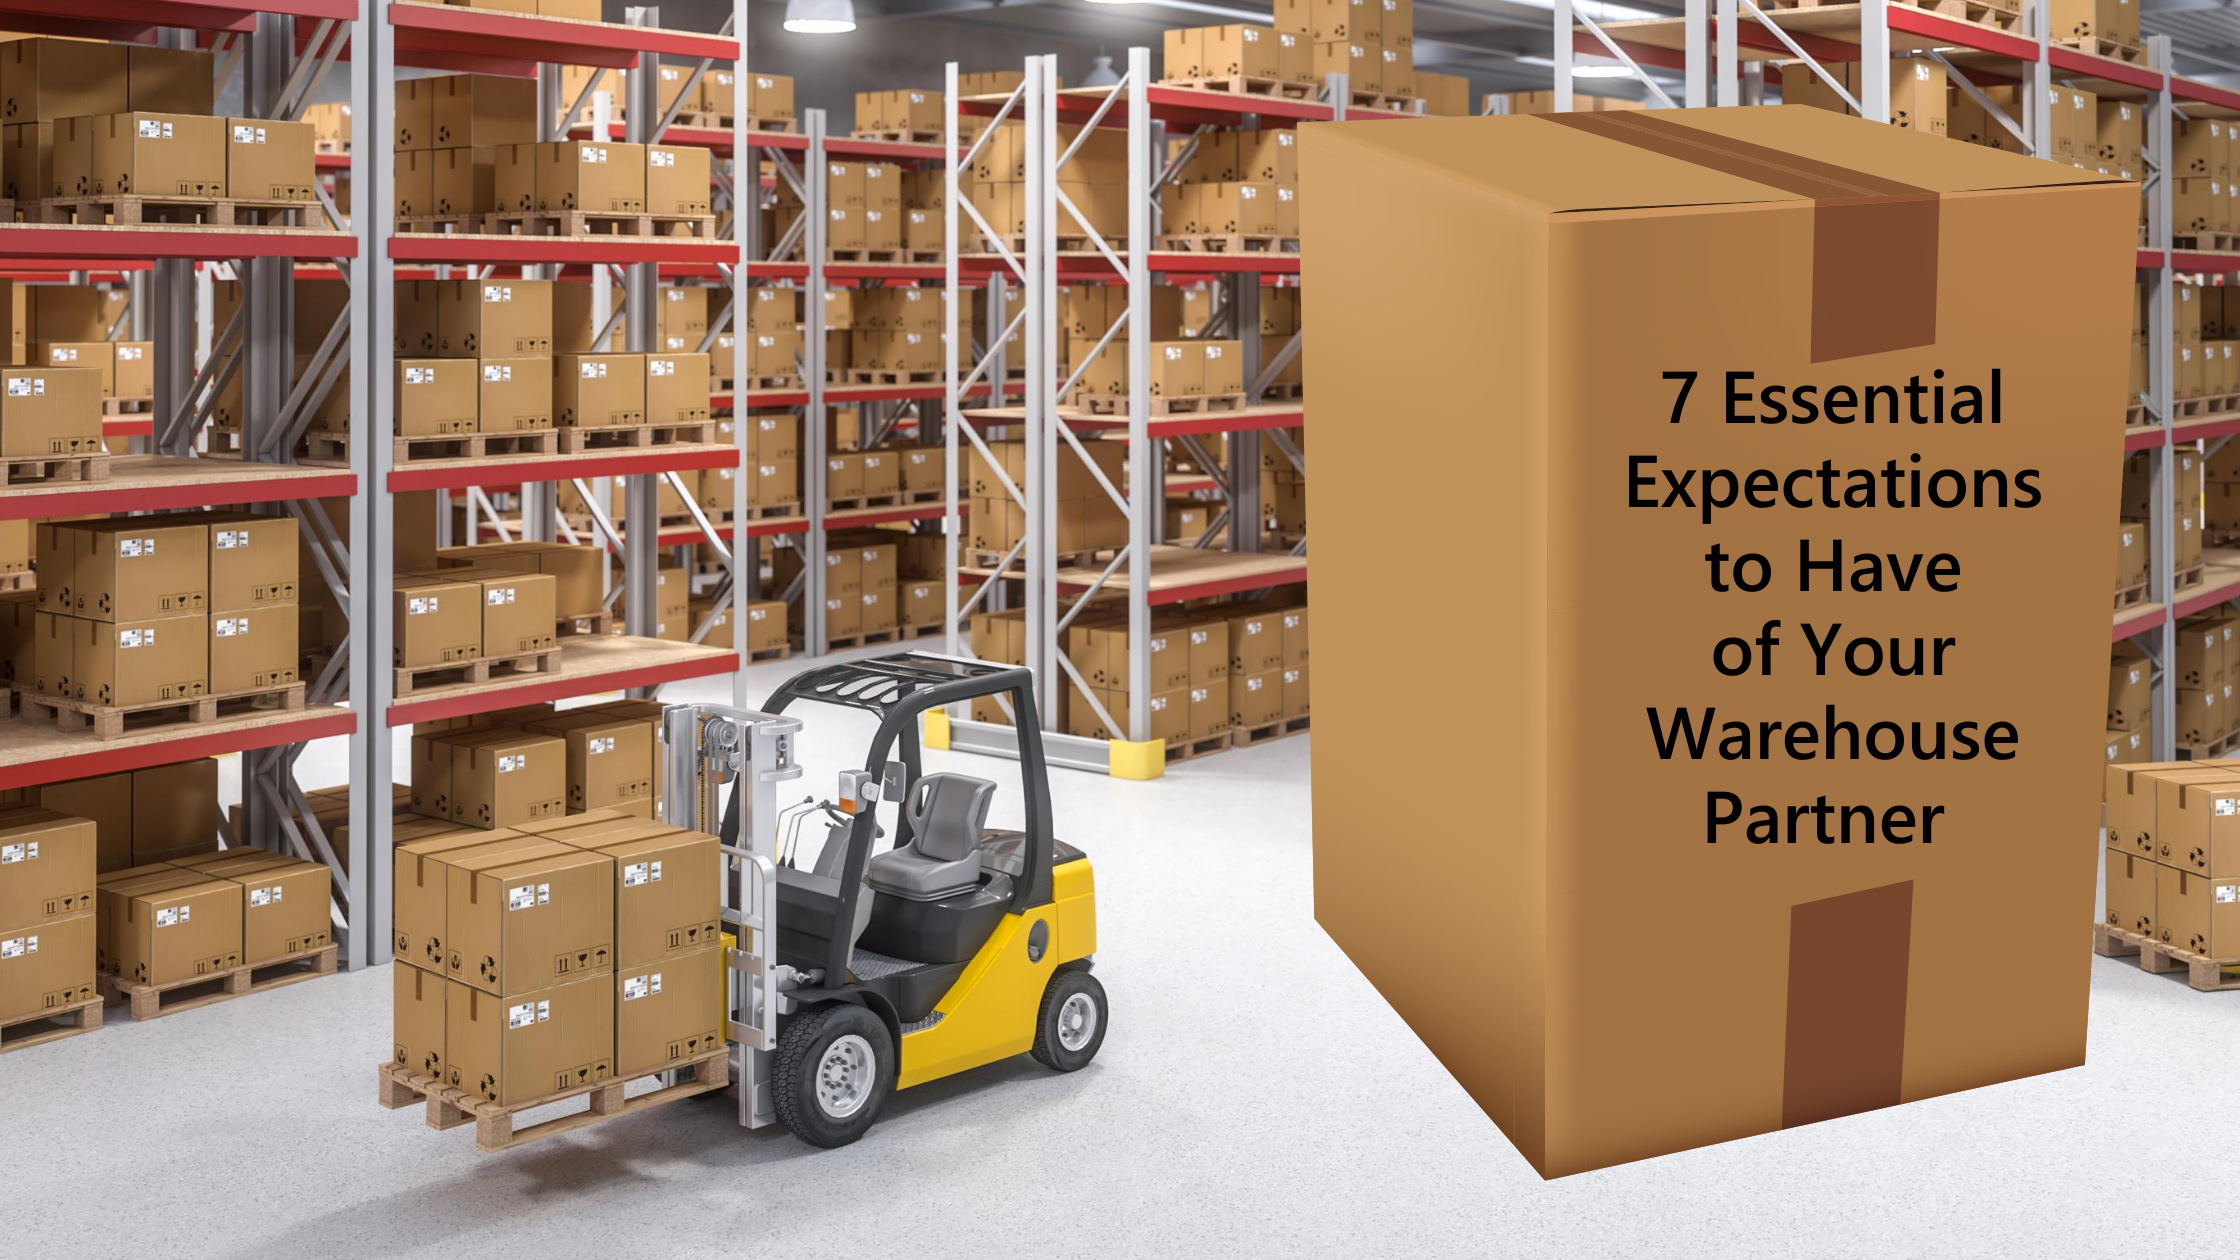 7-Essential-Expectations-To-have-of-Your-Warehouse-Partner-on-a-big-shipping-box-in-a-warehouse-with-racks-of-boxes-and-a-forklift-with-a-pallet-of-boxes